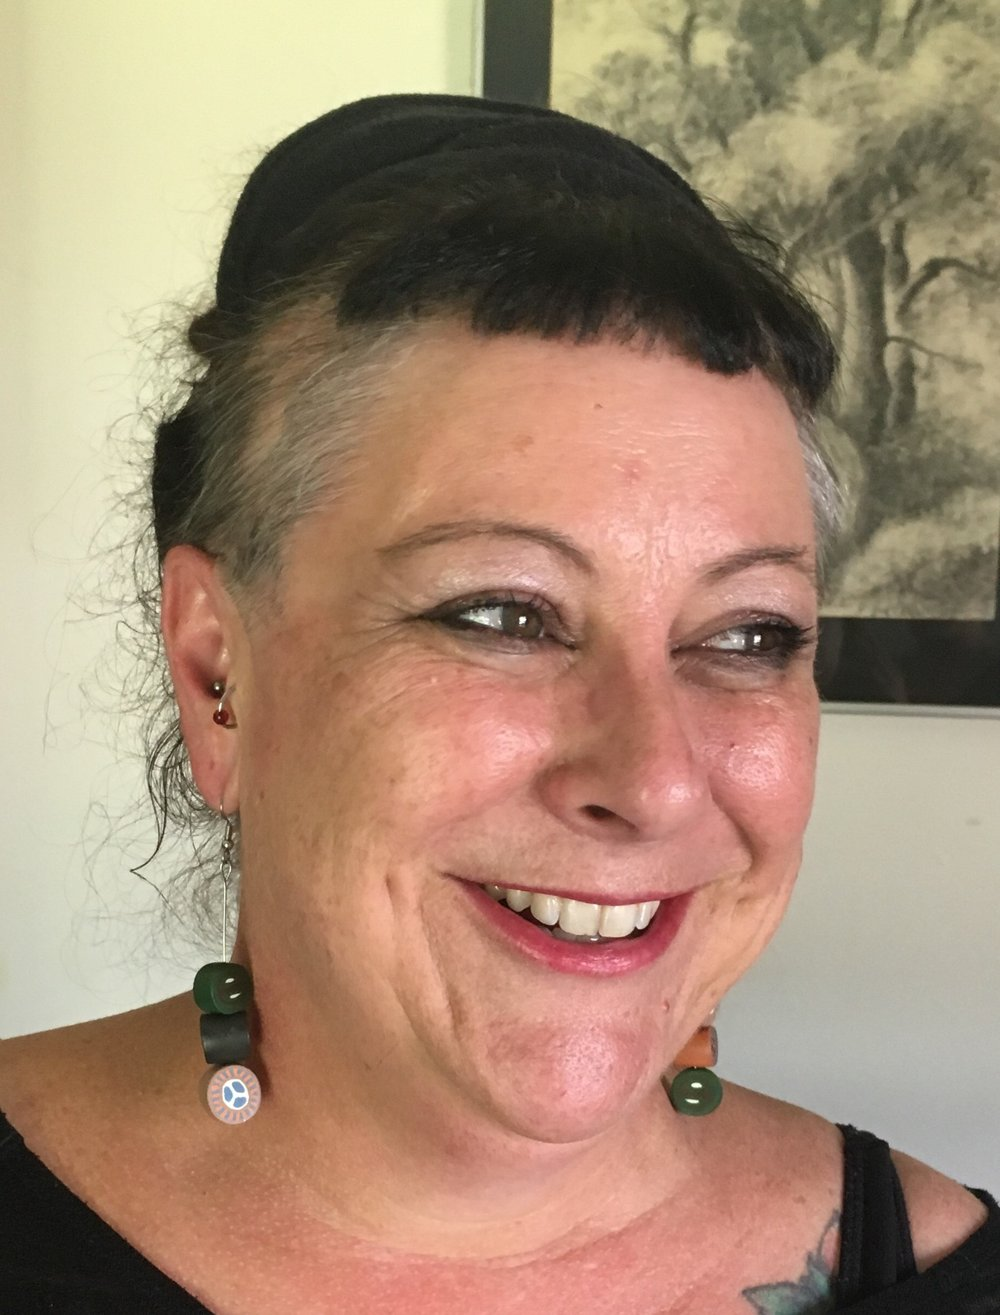 Lindi Dietzel  is of Yorta Yorta (VIC) heritage and was born on the Mornington Peninsula. She is committed to support, advocacy, health and education for Aboriginal people and uses art as therapeutic expression and a way to connect to culture.